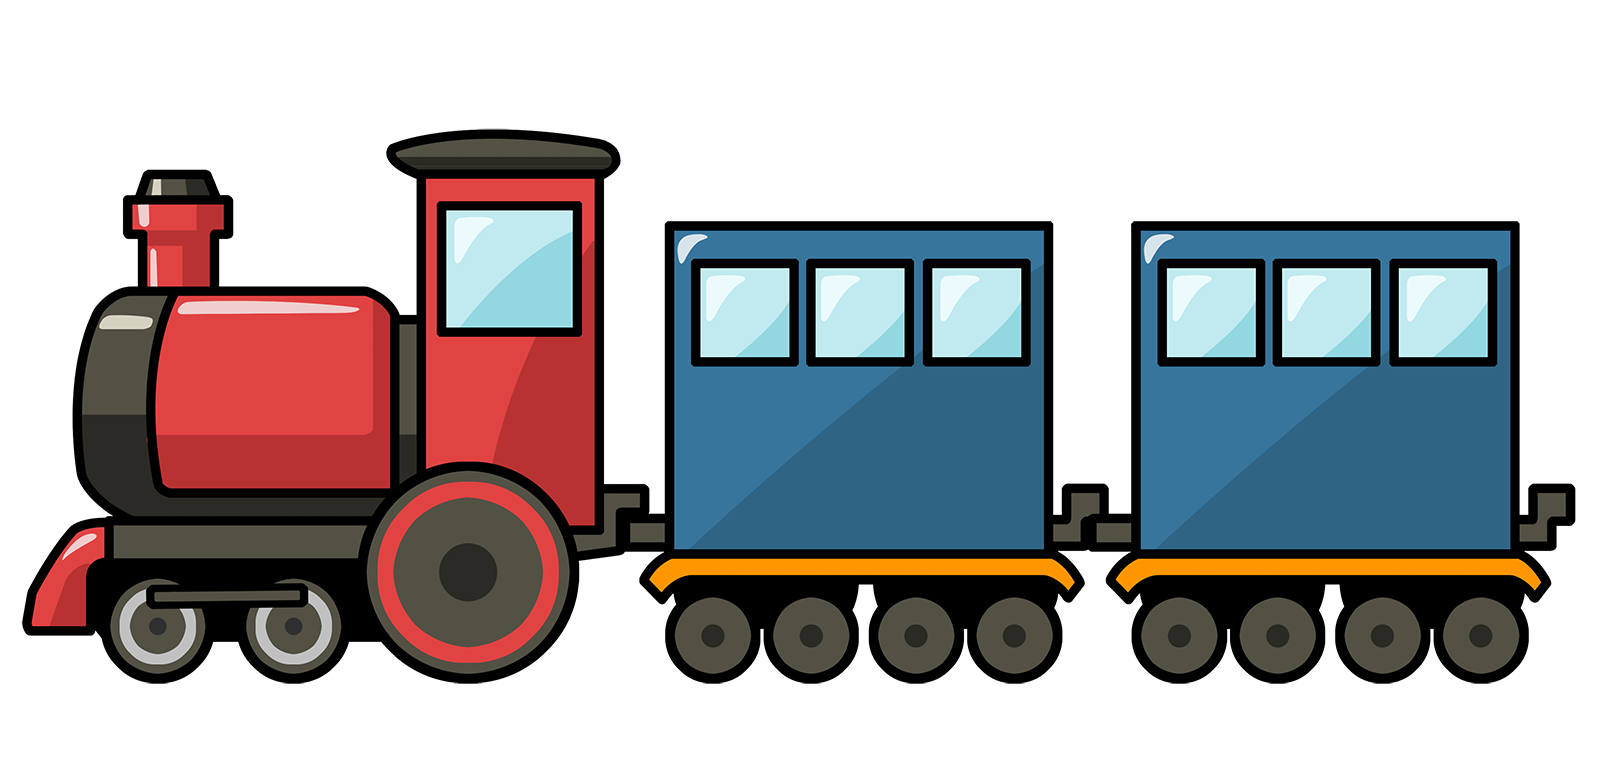 drawing train car